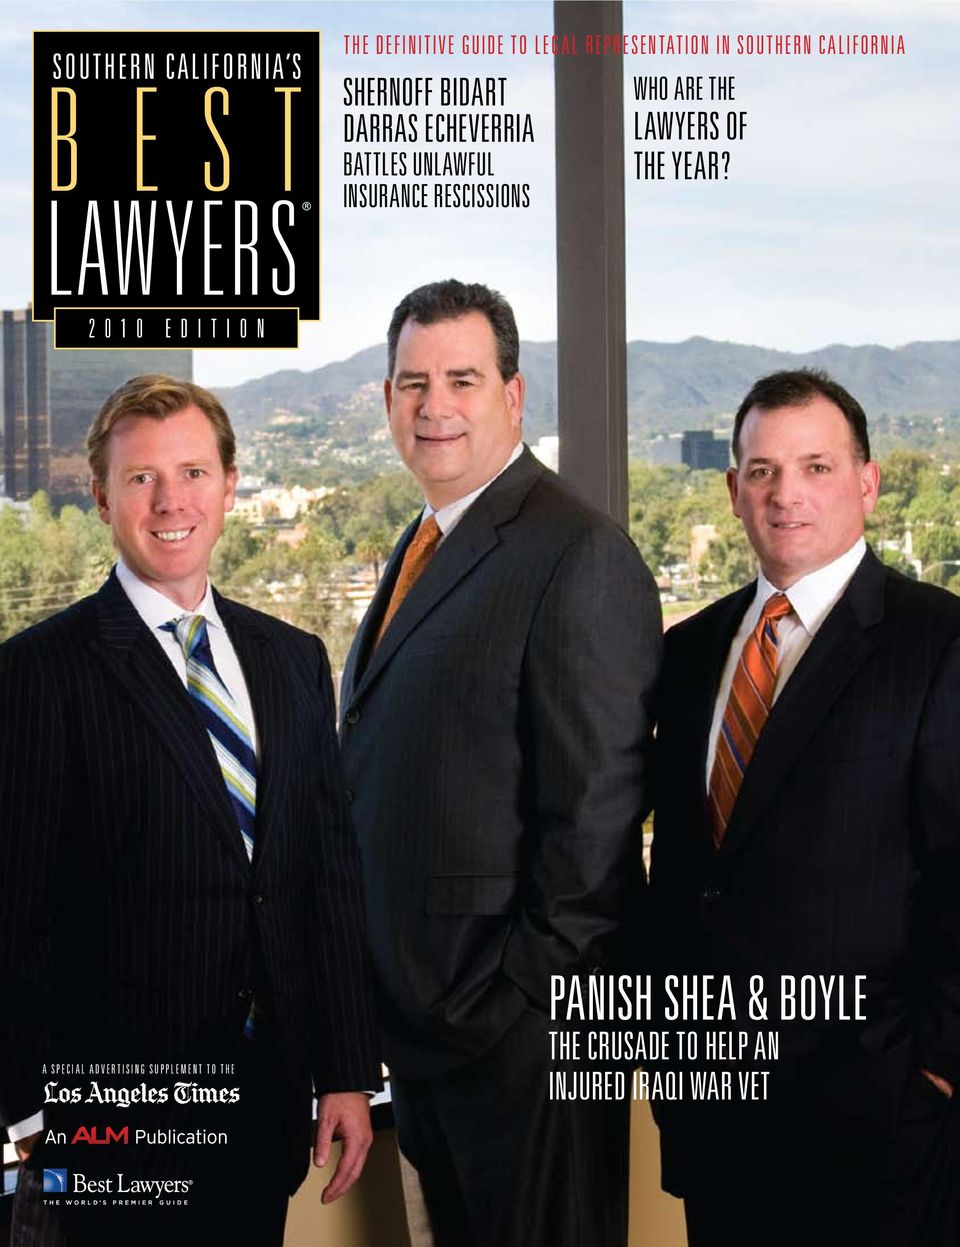 UNLAWFUL INSURANCE RESCISSIONS WHO ARE THE LAWYERS OF THE YEAR?